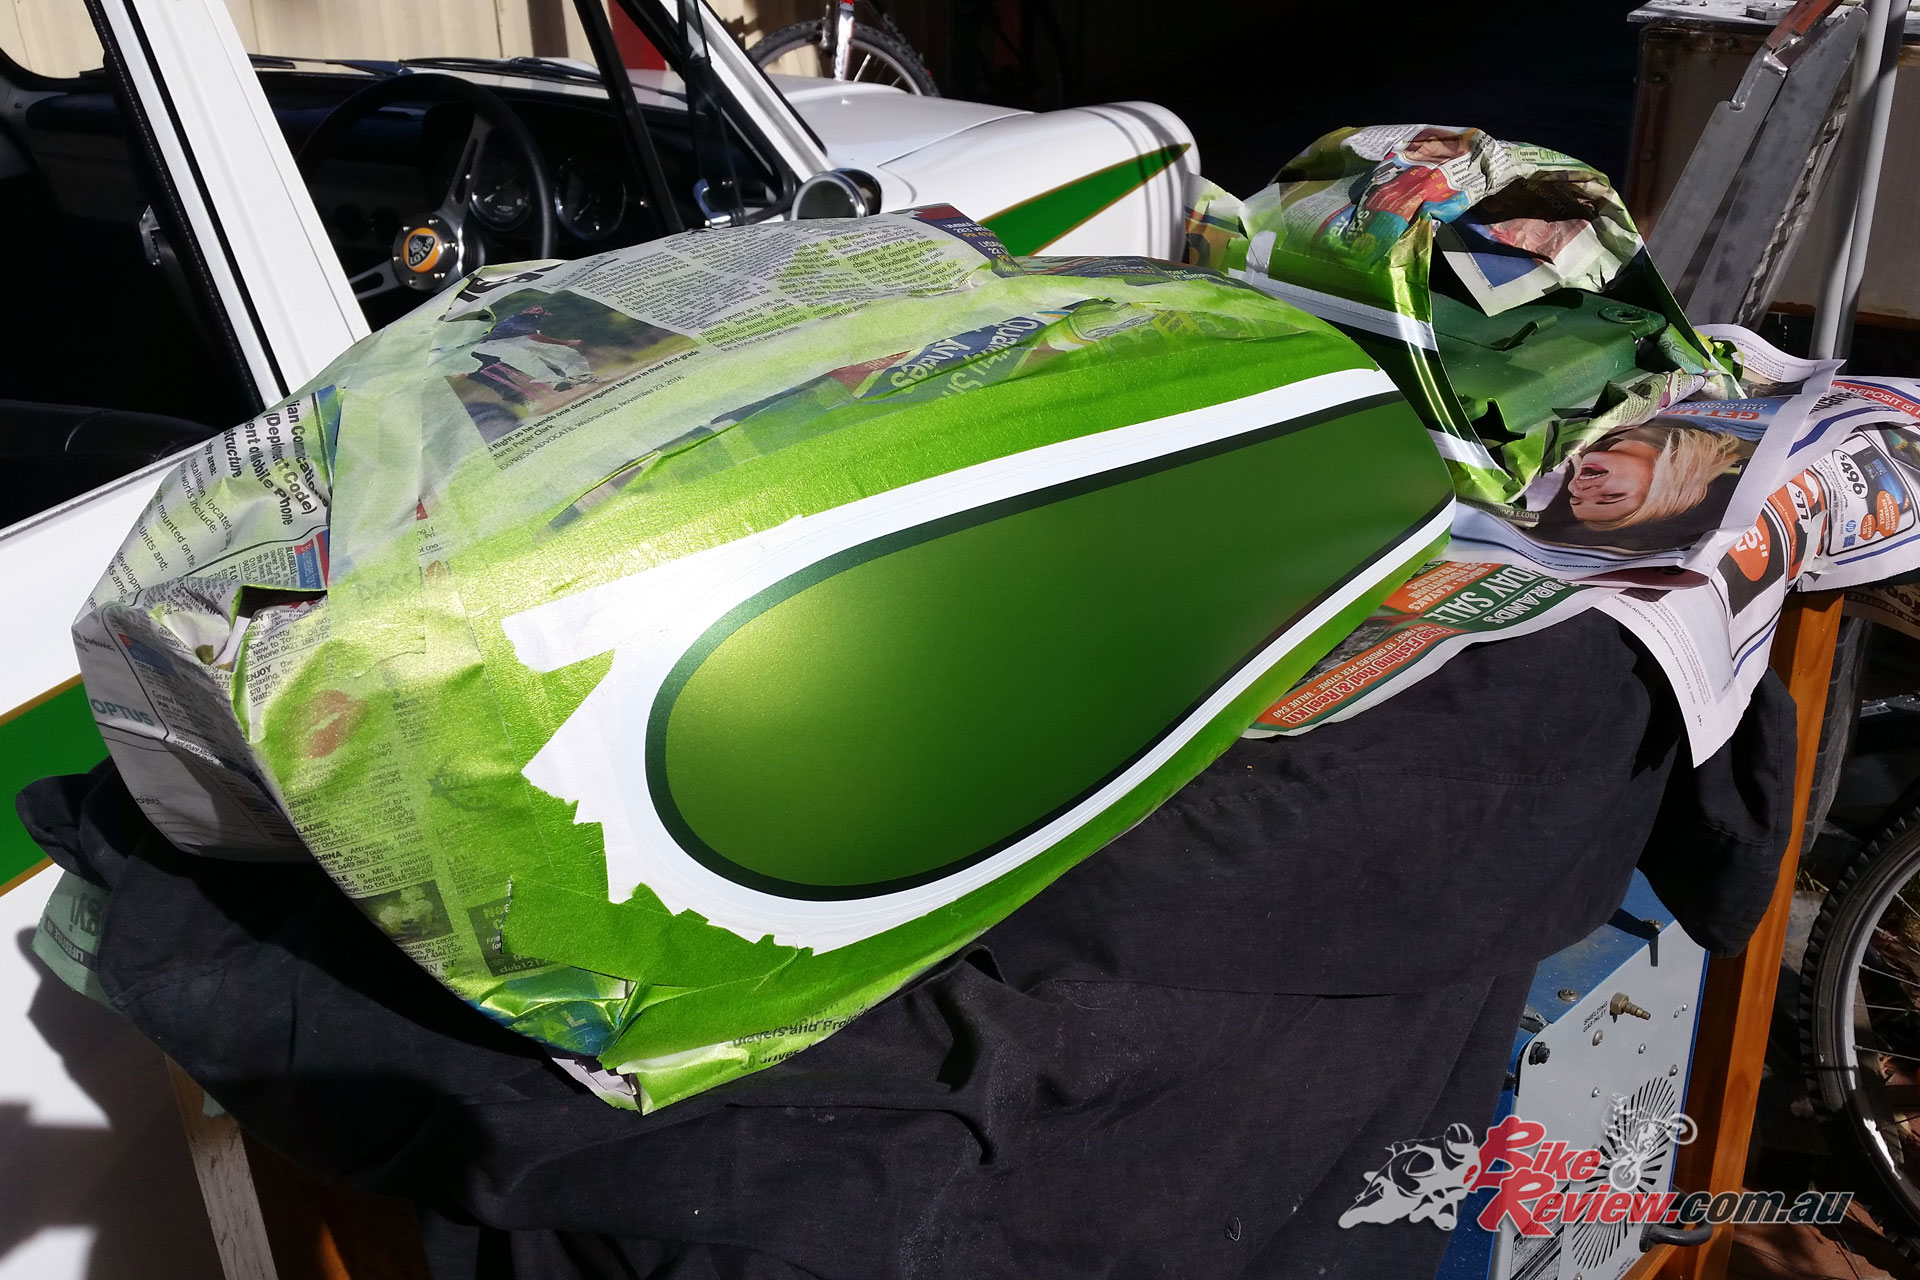 Bodywork being painted is timely and costly, so doing it yourself (if possible) is well worth it. The colours aren't original, but maintain the theme.